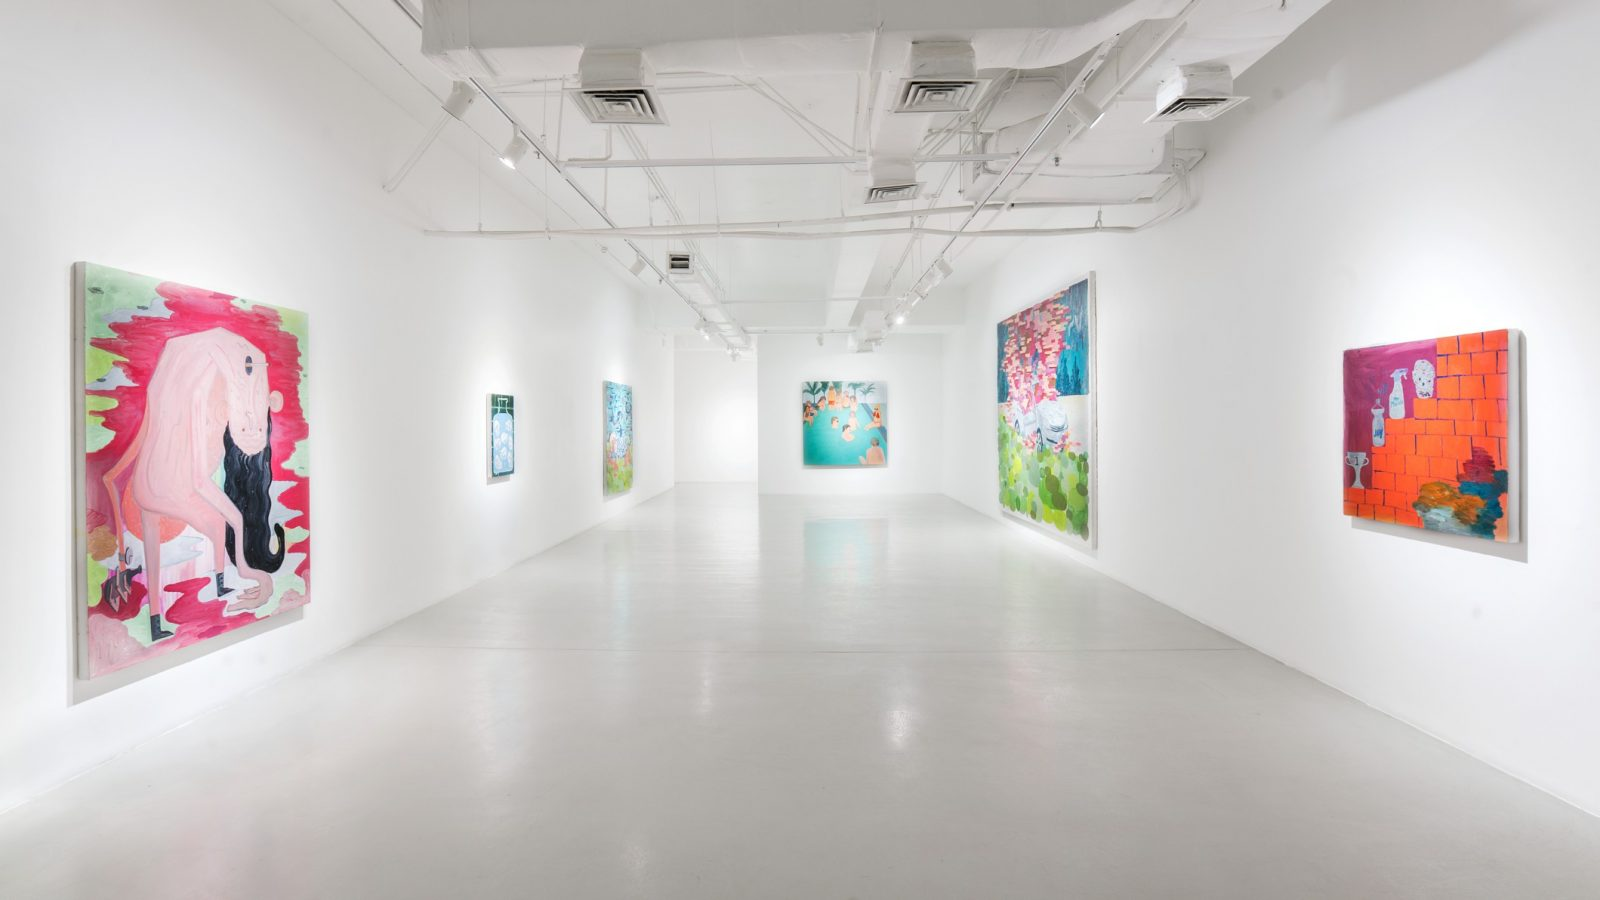 Installation View 02